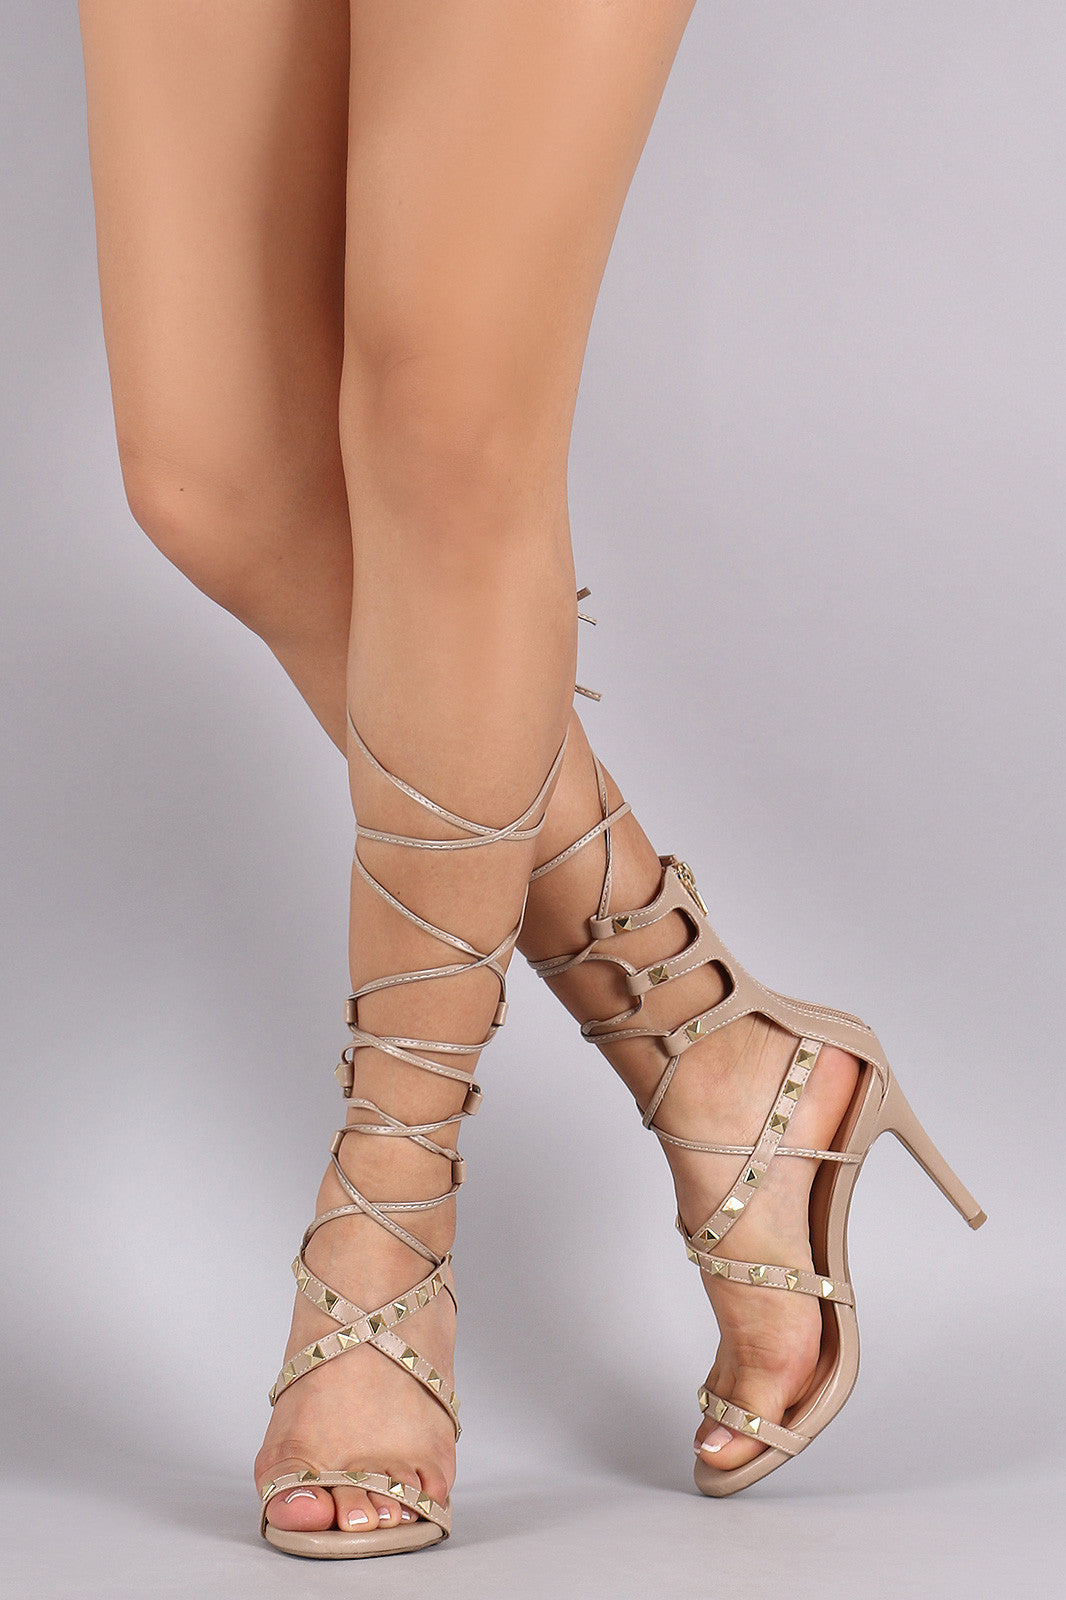 Wild Diva Lounge Studded Strappy Lace-Up Heel - Thick 'N' Curvy Shop - 1